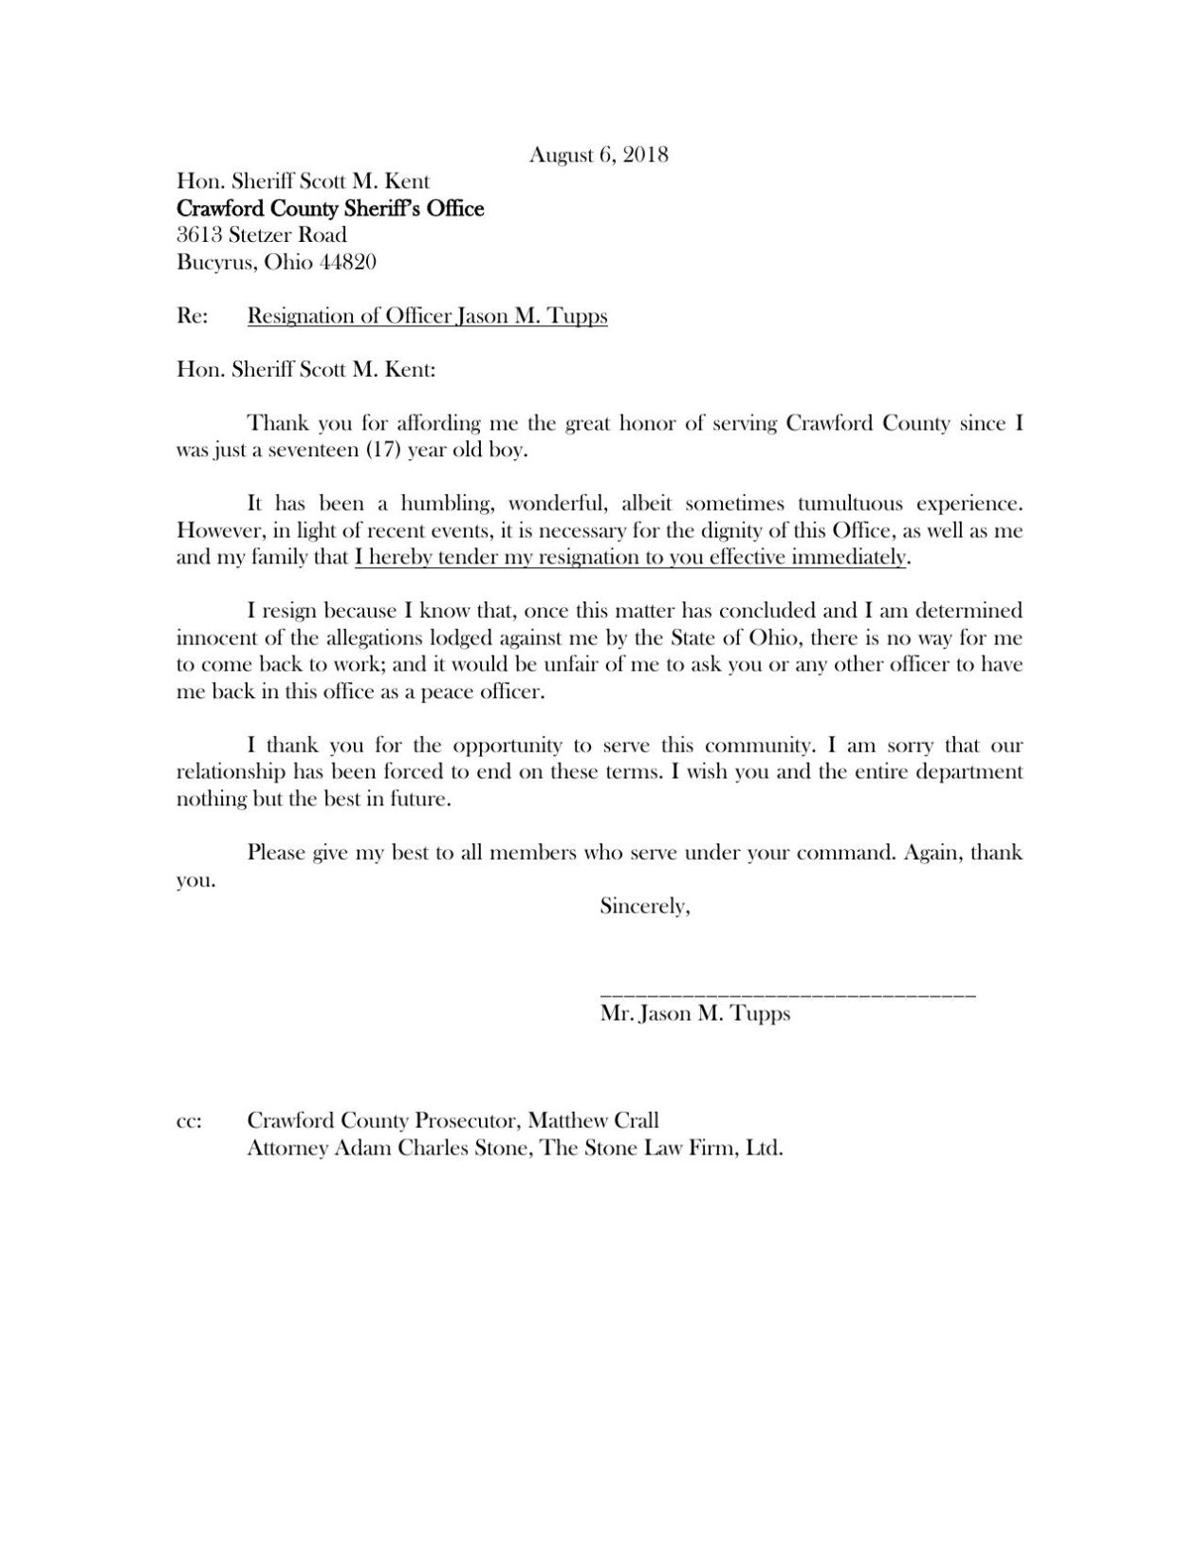 Forced resignation letter sample customer services representative forced resignation letter sample vice principal resume 5b688609d267f forced resignation letter samplehtml expocarfo Image collections